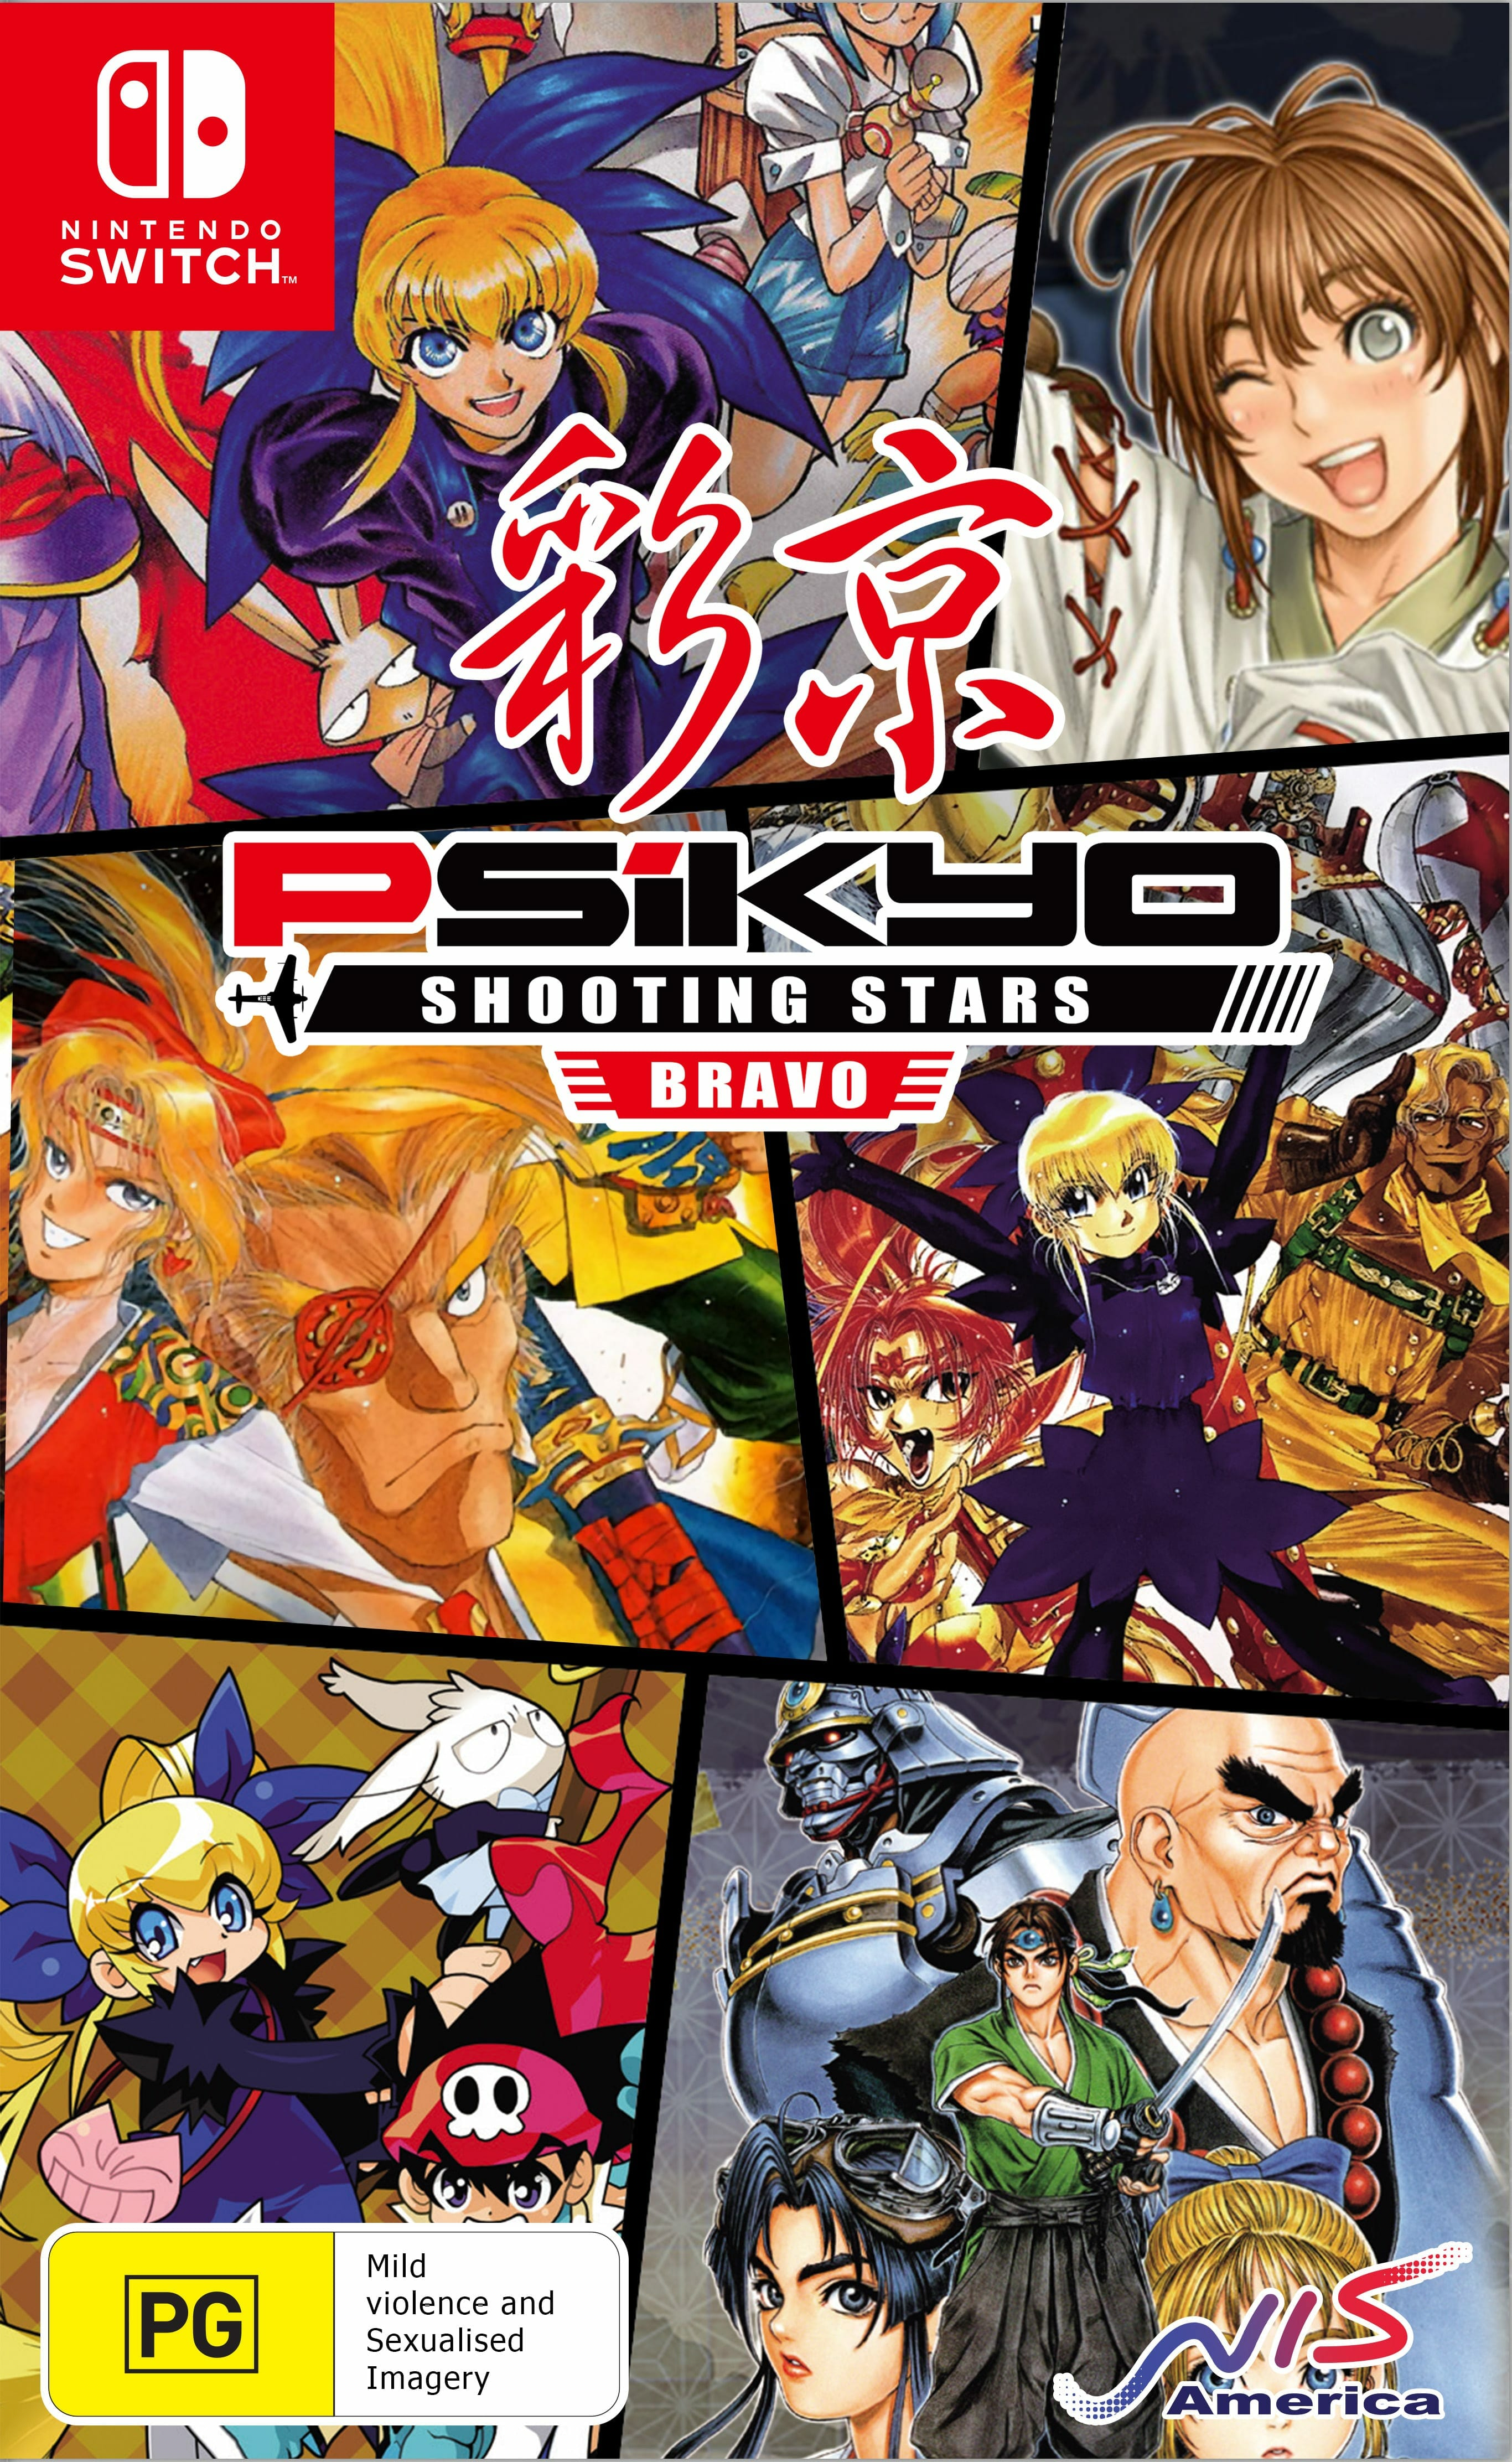 Psikyo Shooting Stars Alpha 1 - Psikyo Shooting Stars Alpha and Bravo Release Dates Announced